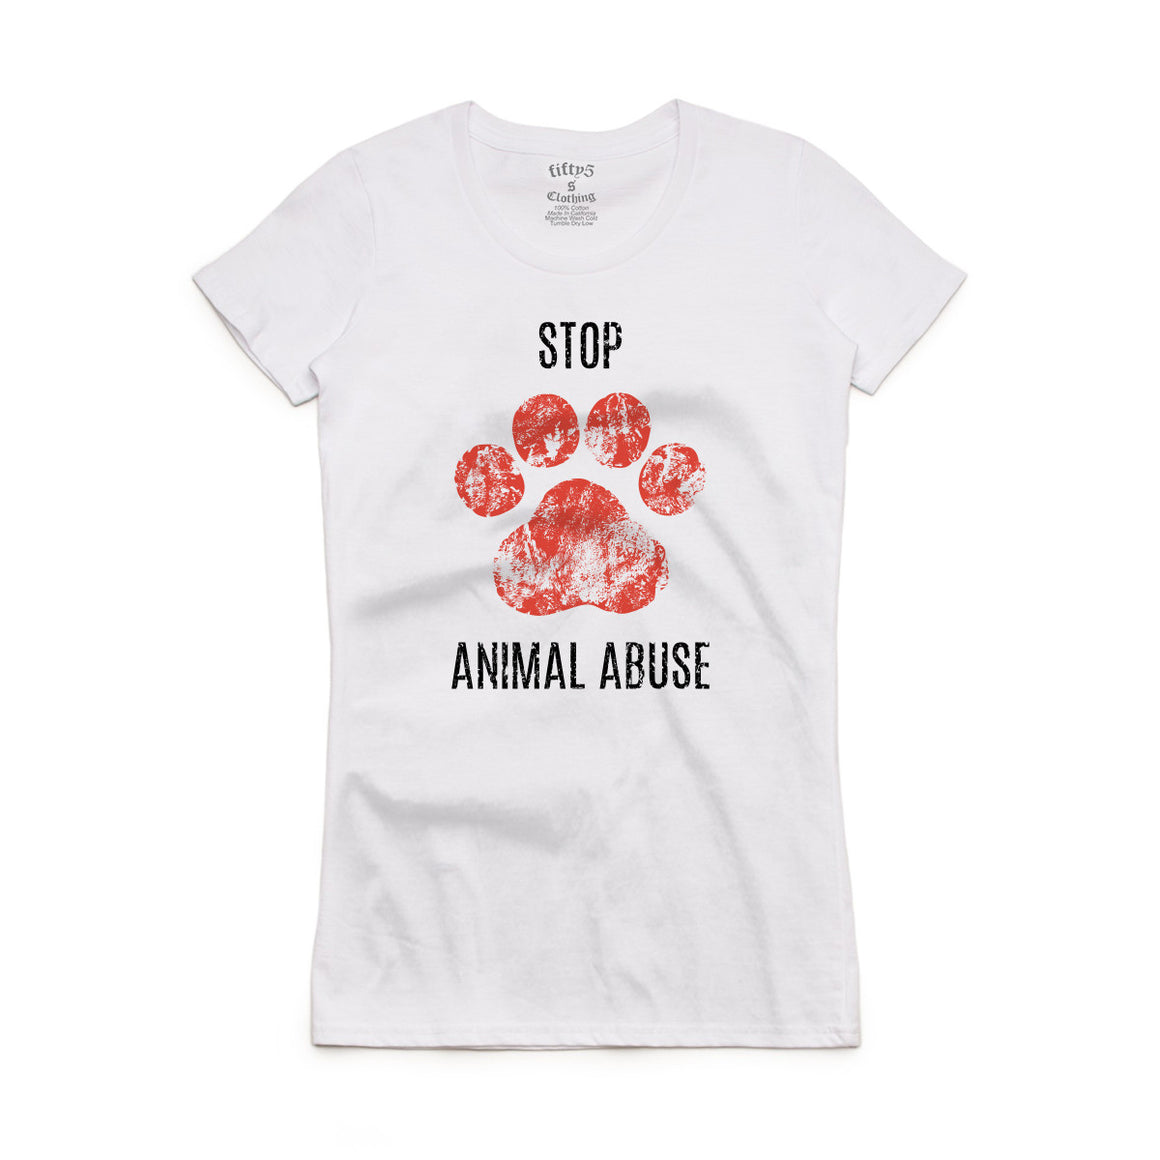 Fifty5 Clothing Stop Animal Abuse Women's Crew Neck T-Shirt